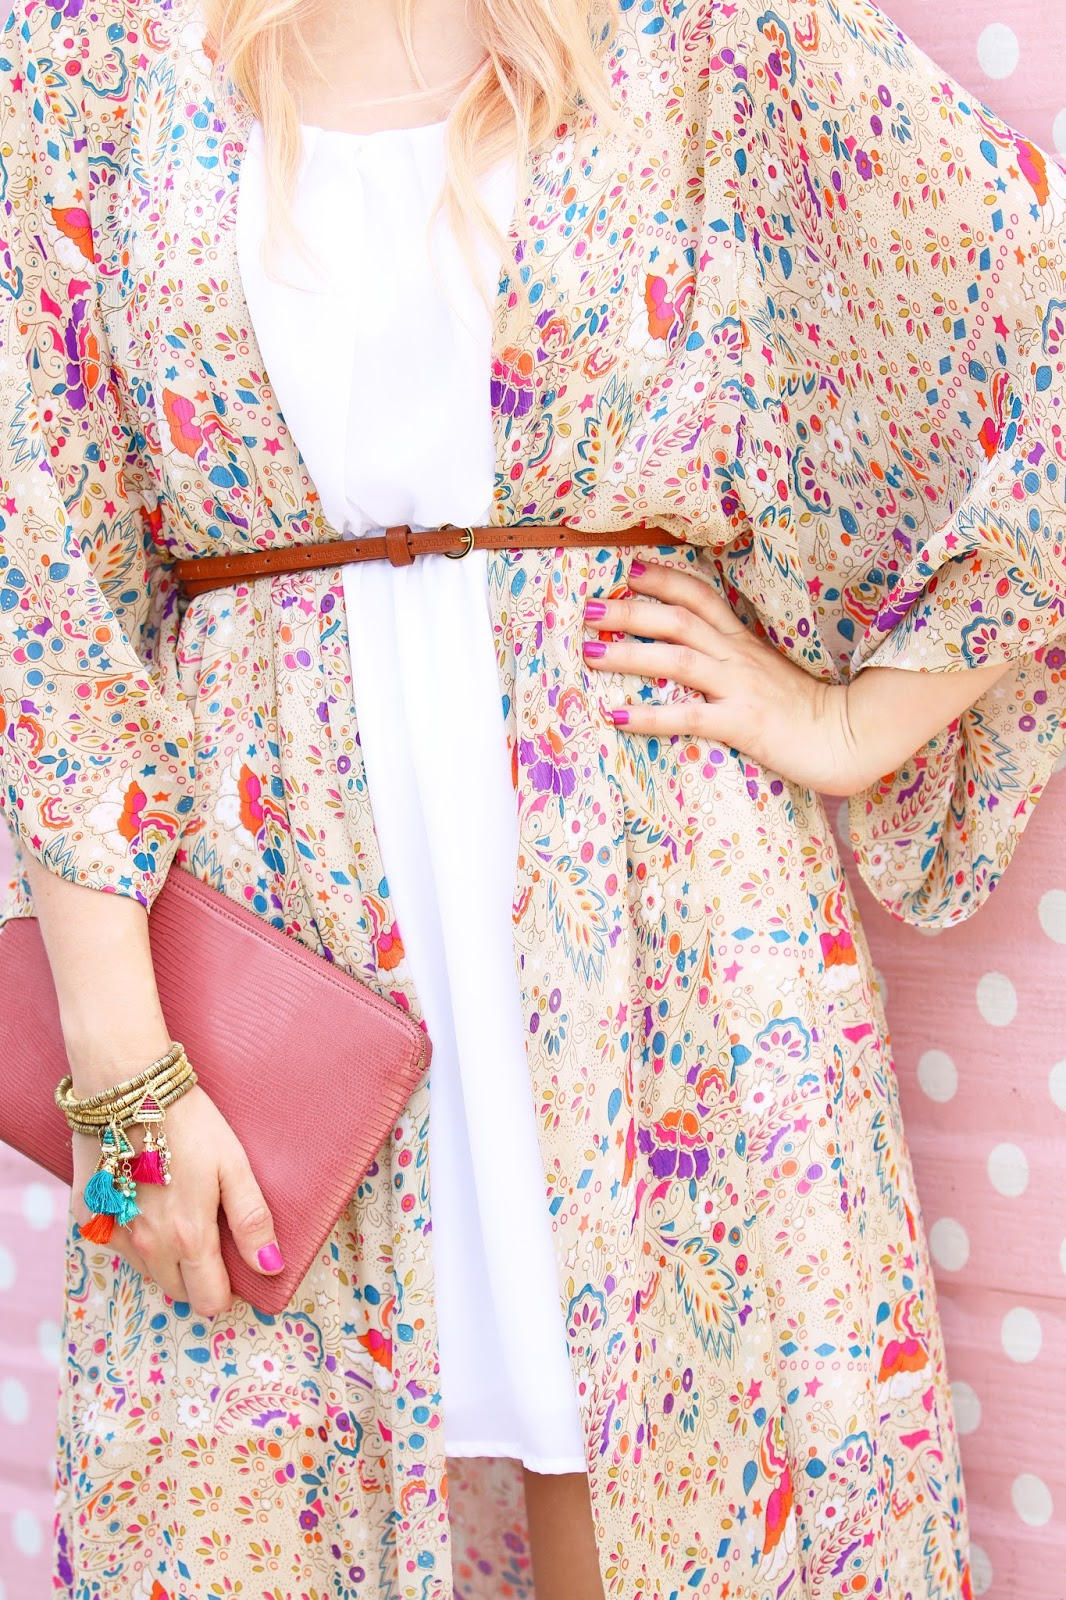 Cute kimono outfit for the Summer